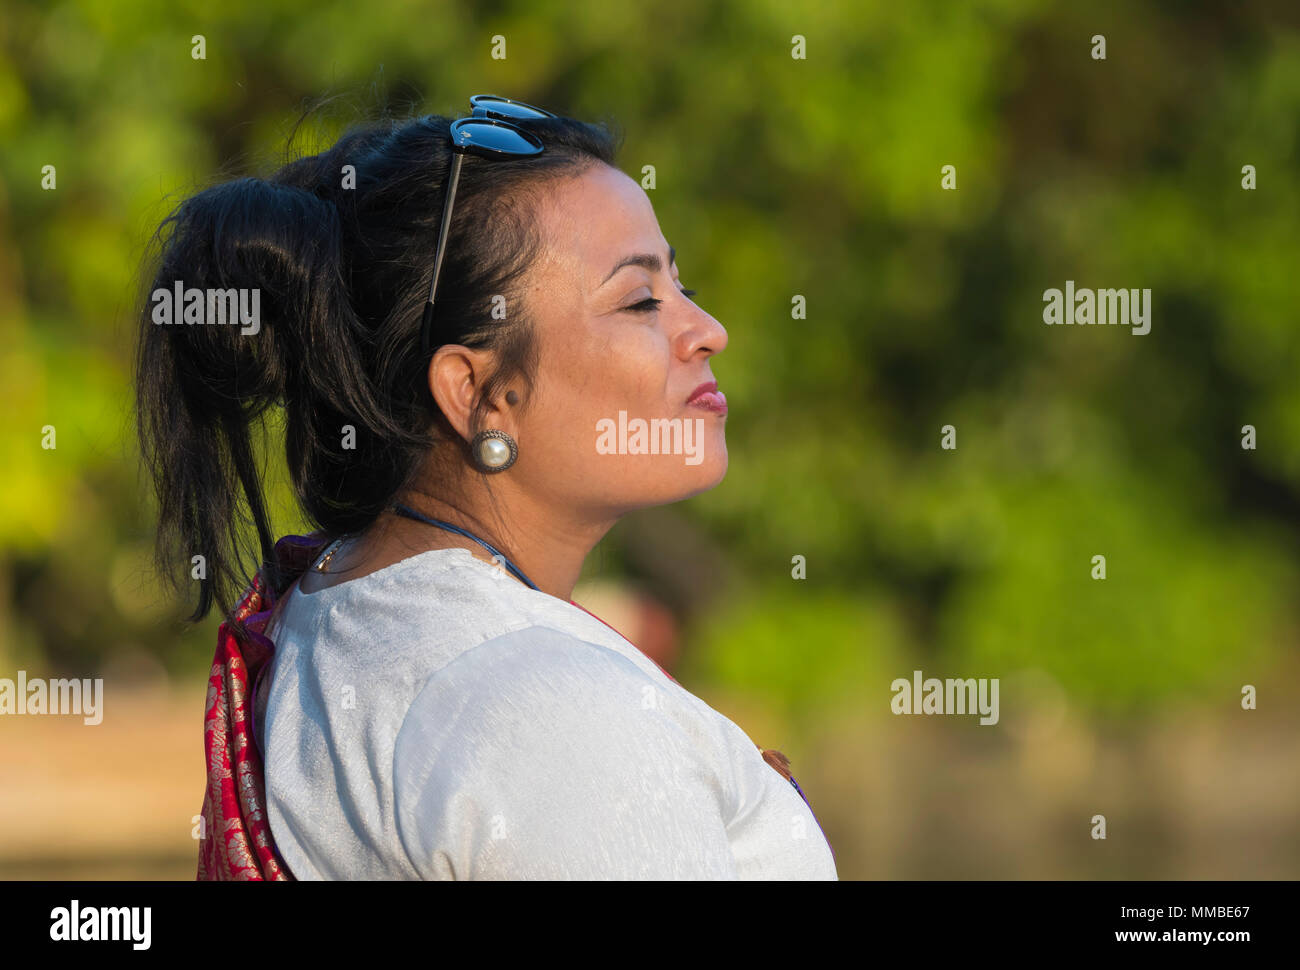 Pretty middle aged Asian woman in the UK standing outside, taking in a deep breath of fresh outdoors air. Taking it in concept. - Stock Image